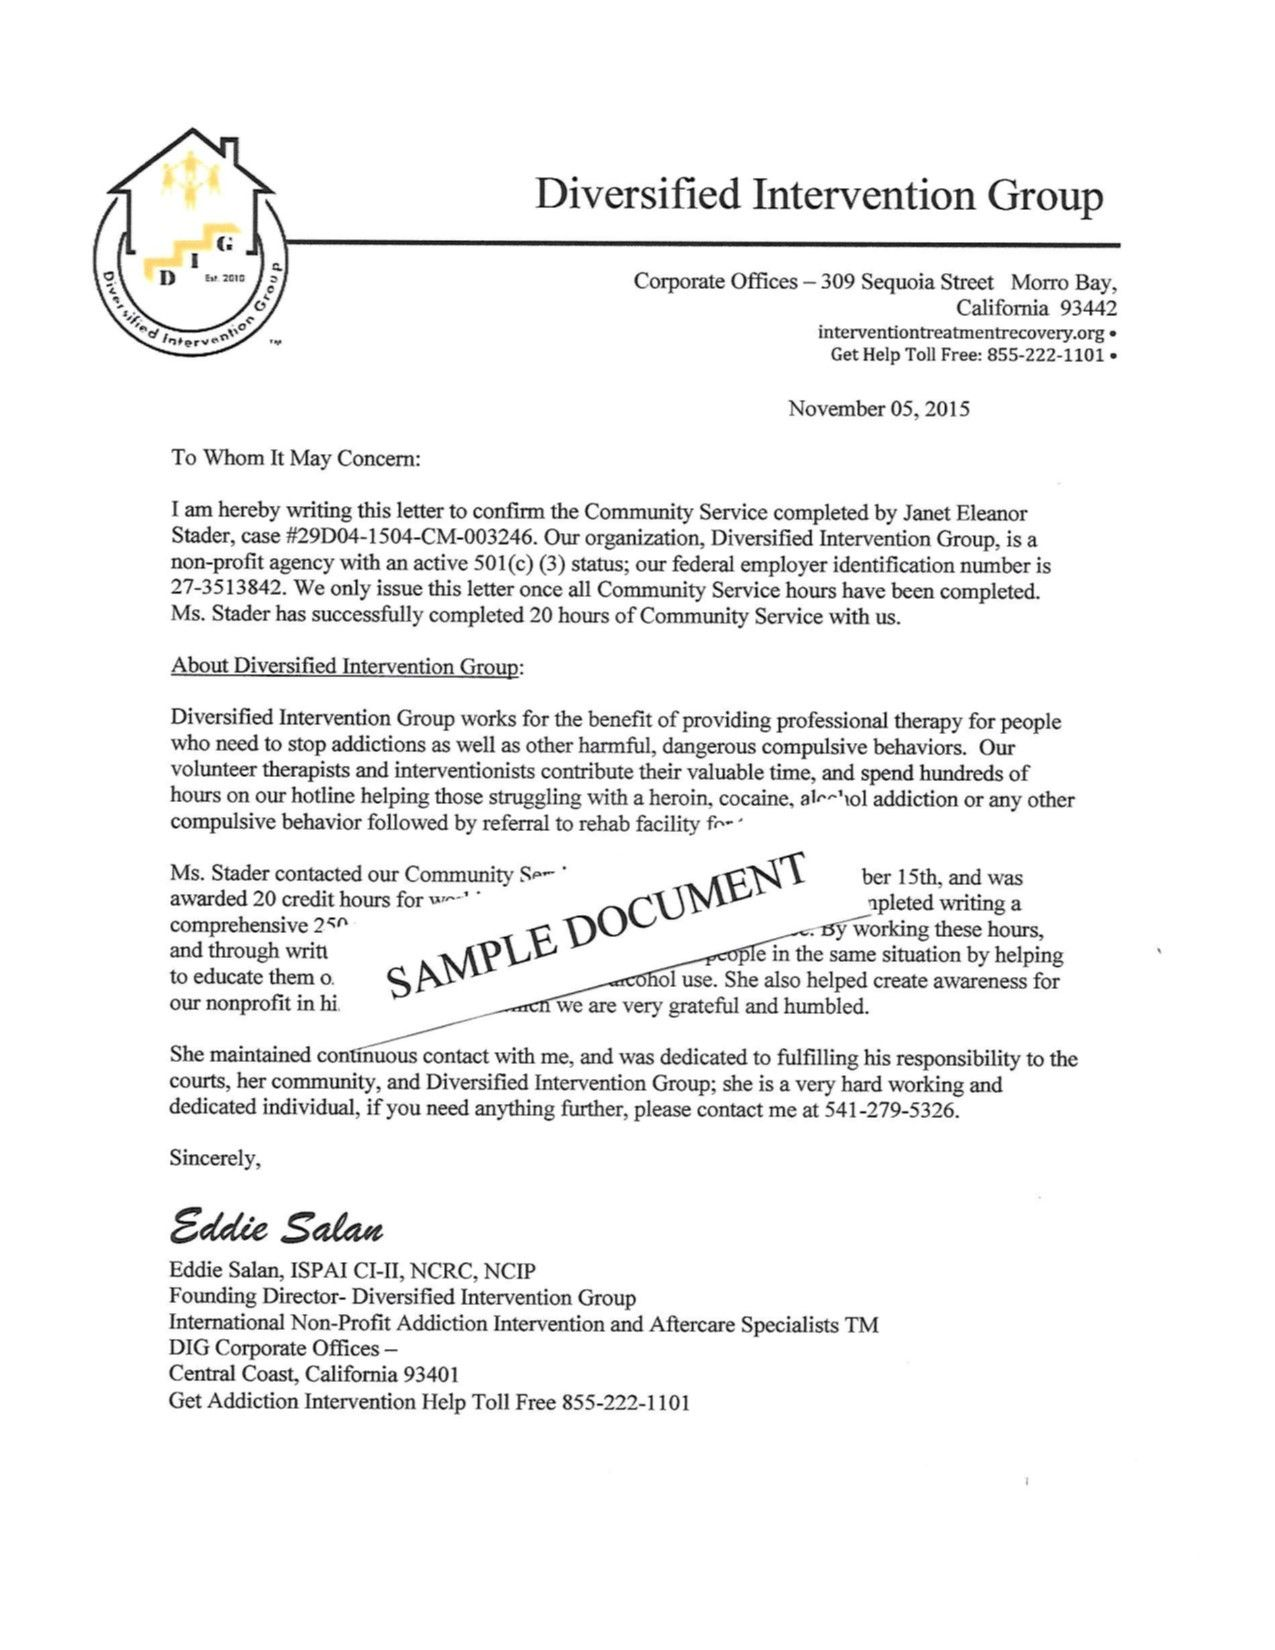 Community Service Hours Completion Letter Template Luxury Munity